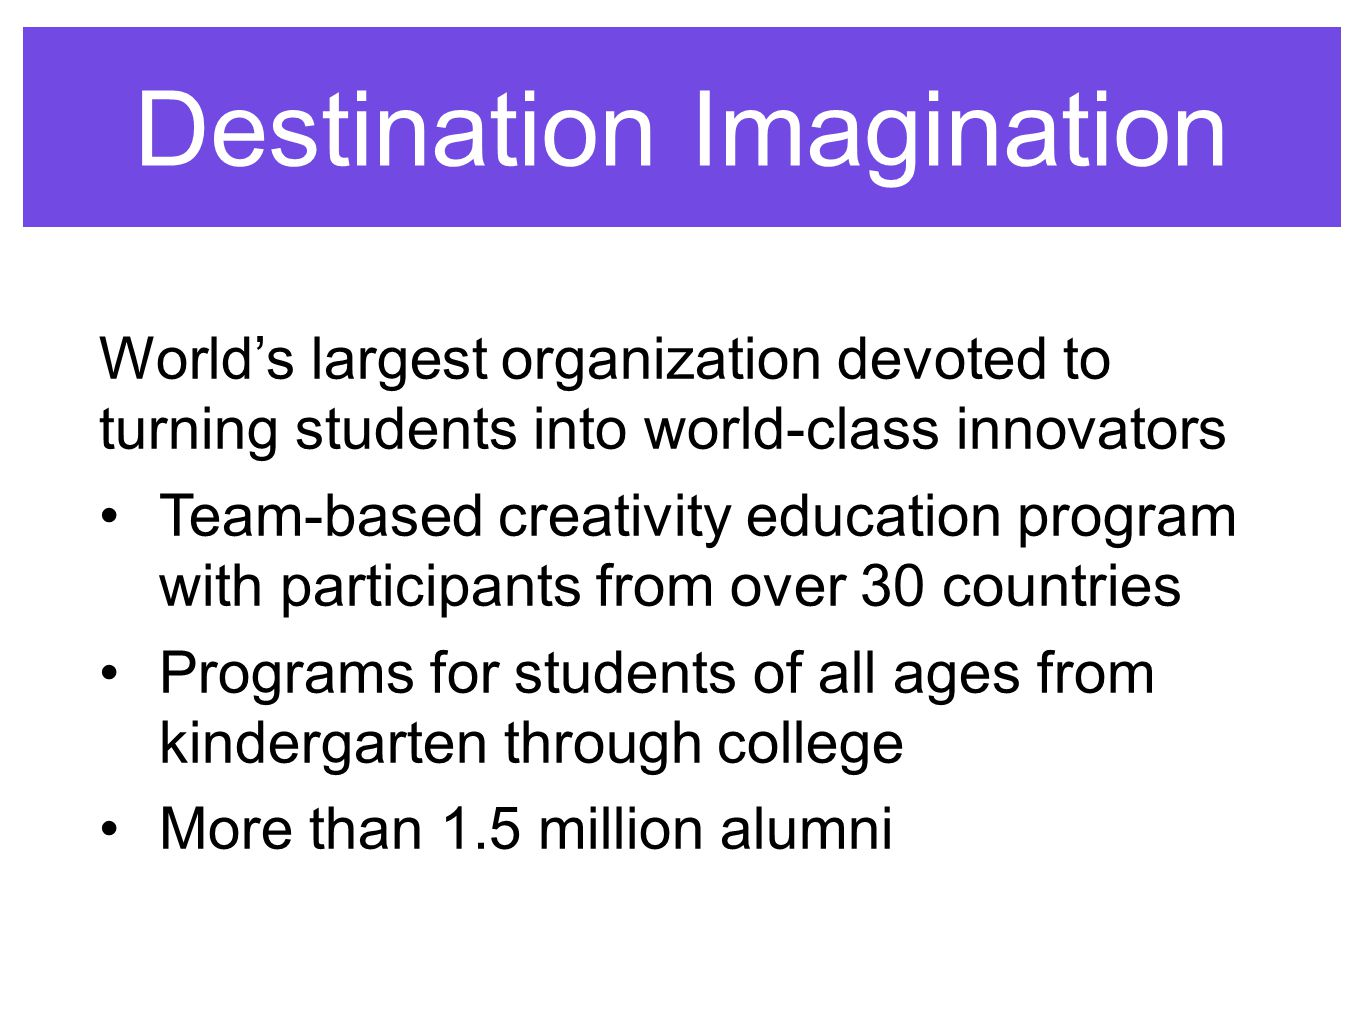 The Creative Process Destination Imagination teaches the creative process from imagination to innovation.